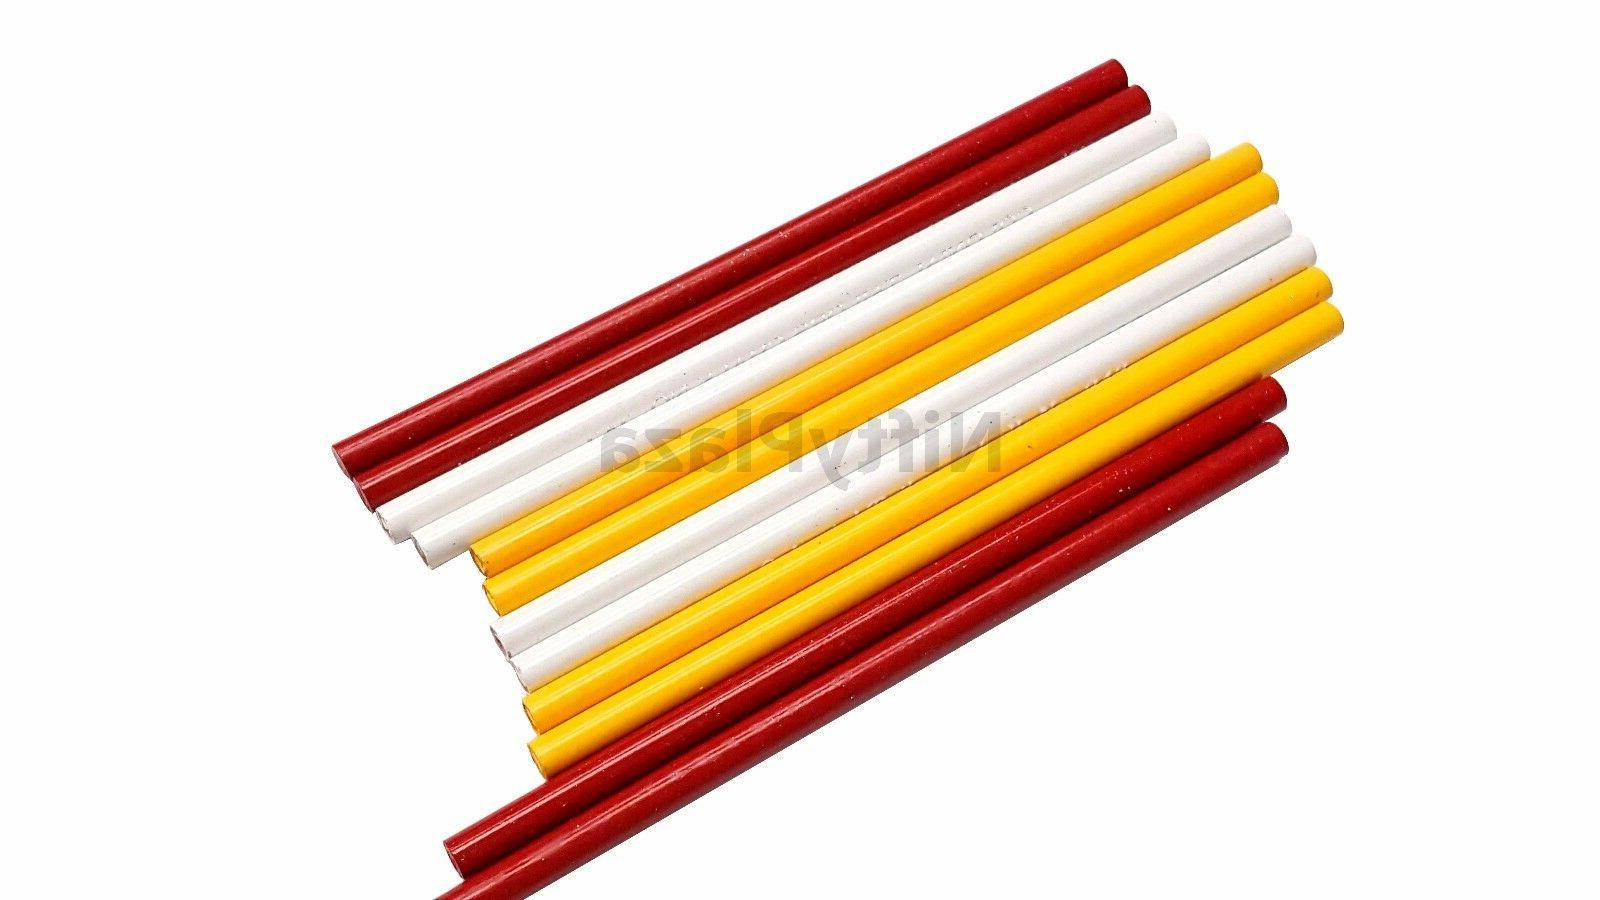 Pack of 3 Chalk Fabric Marking Pencils Sewing Tracing New